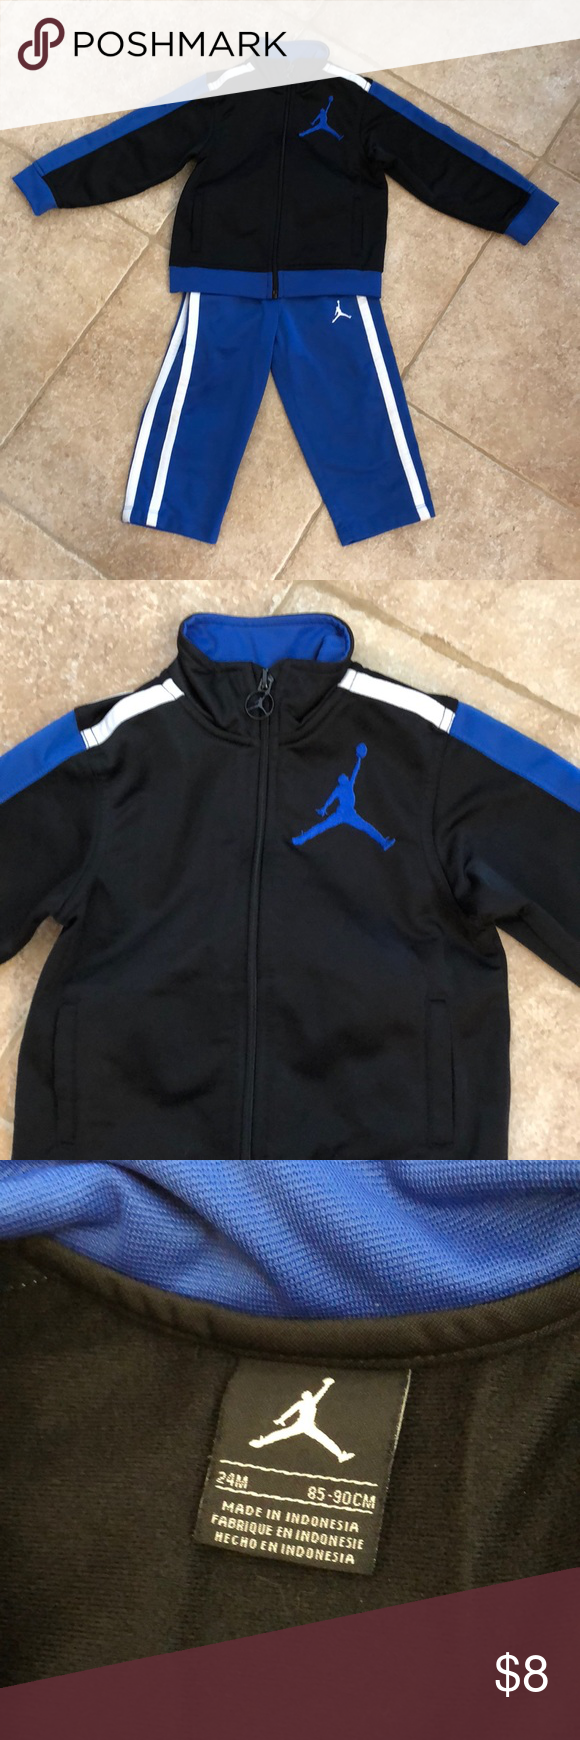 86dc6ee2f19aaa Outfit Black and Blue MJ outfit. Excellent condition. Tag is cut out of  pants